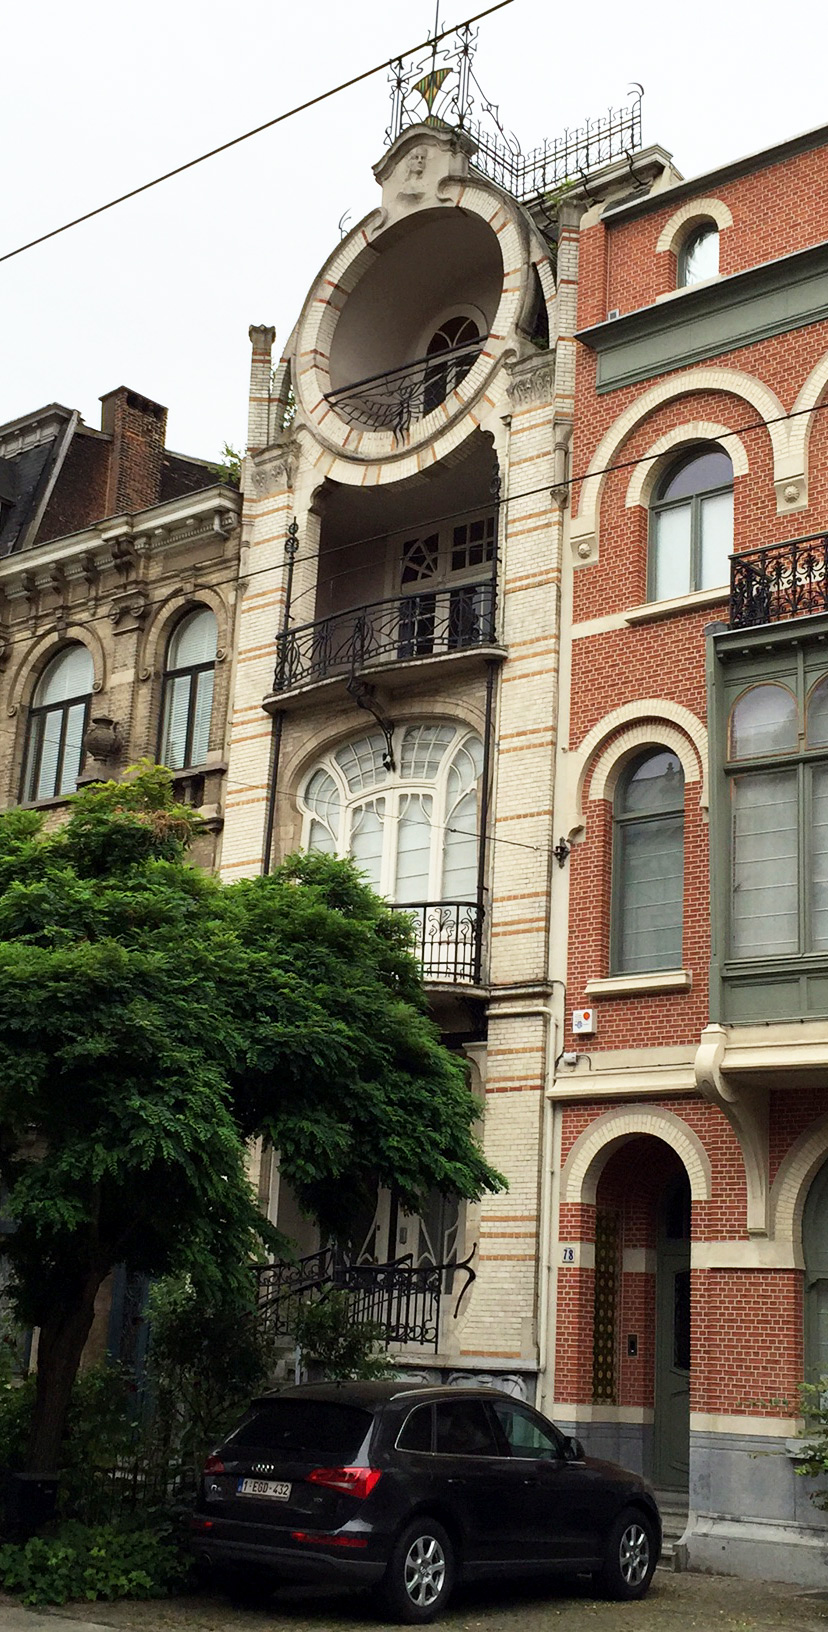 Another of the fine Art Nouveau homes on the street